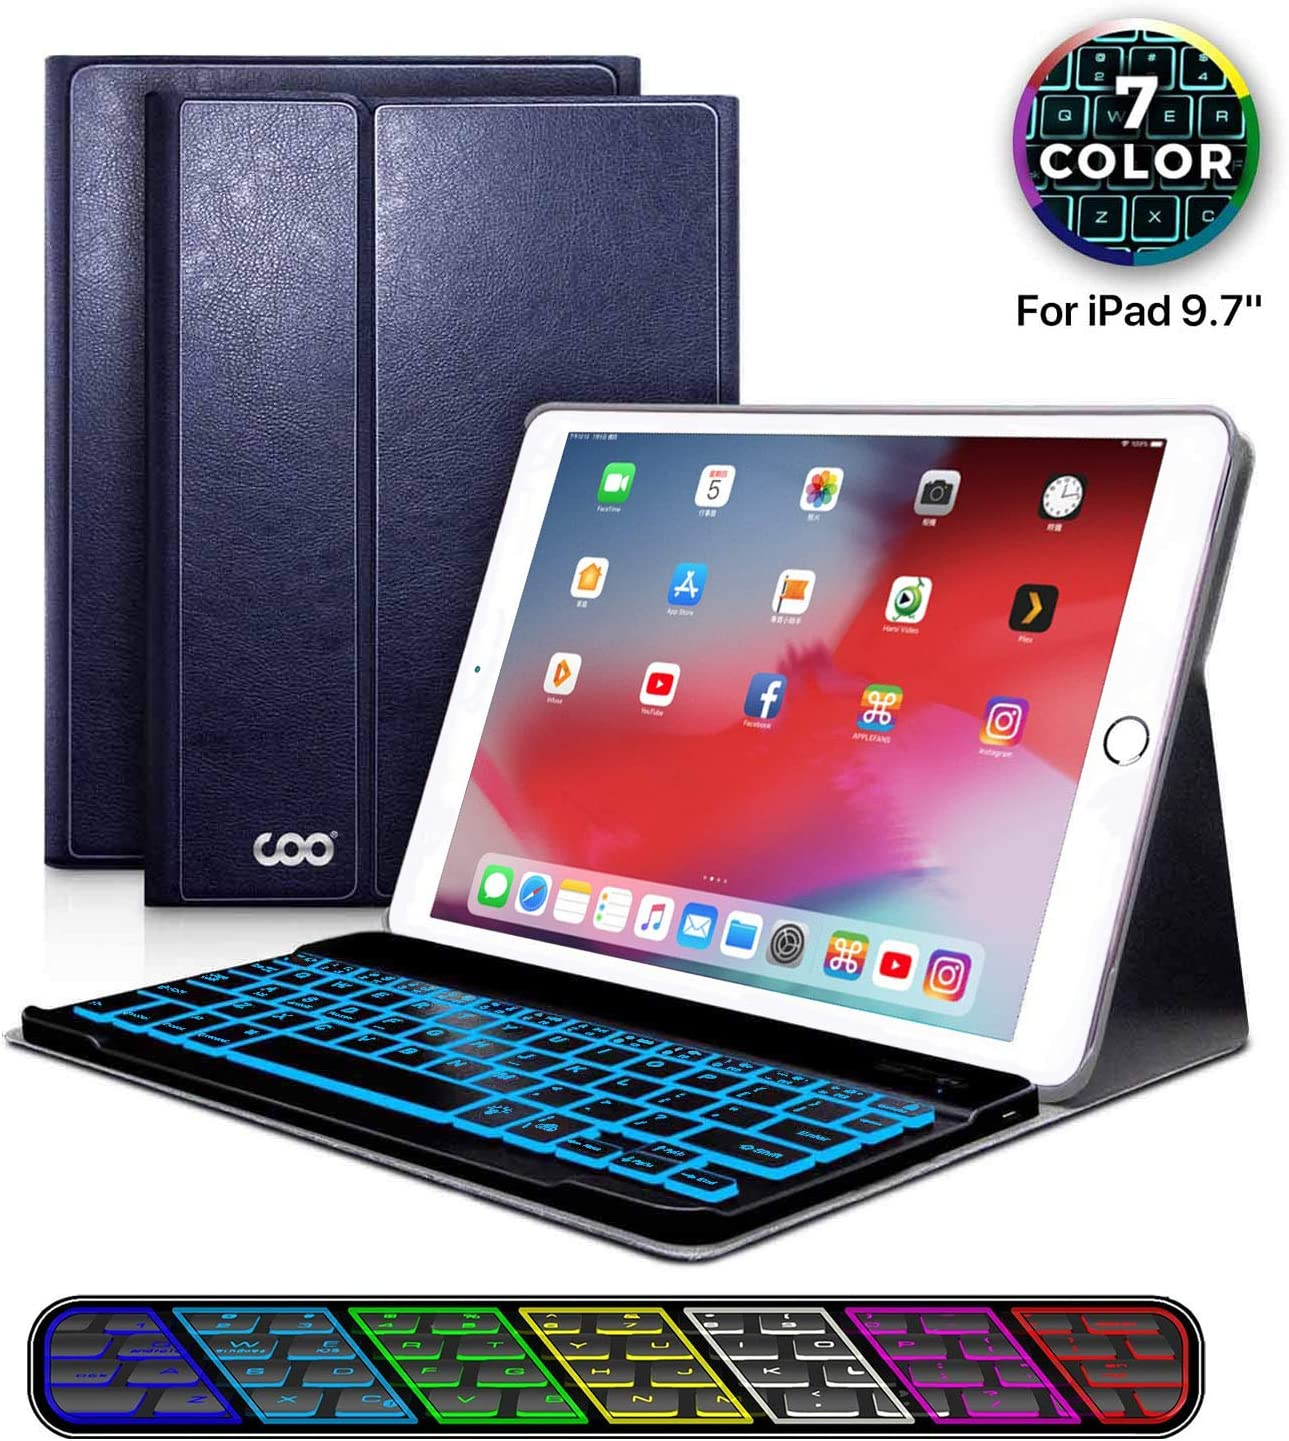 iPad Keyboard Case 9.7 for New iPad 2018 (6th Gen) - iPad Pro 2017 (5th Gen) - iPad Air 2/1, 7 Color Backlit Keyboard with Wireless Bluetooth, Magnetic Cover with Apple Sleep/Wake (Dark Blue)